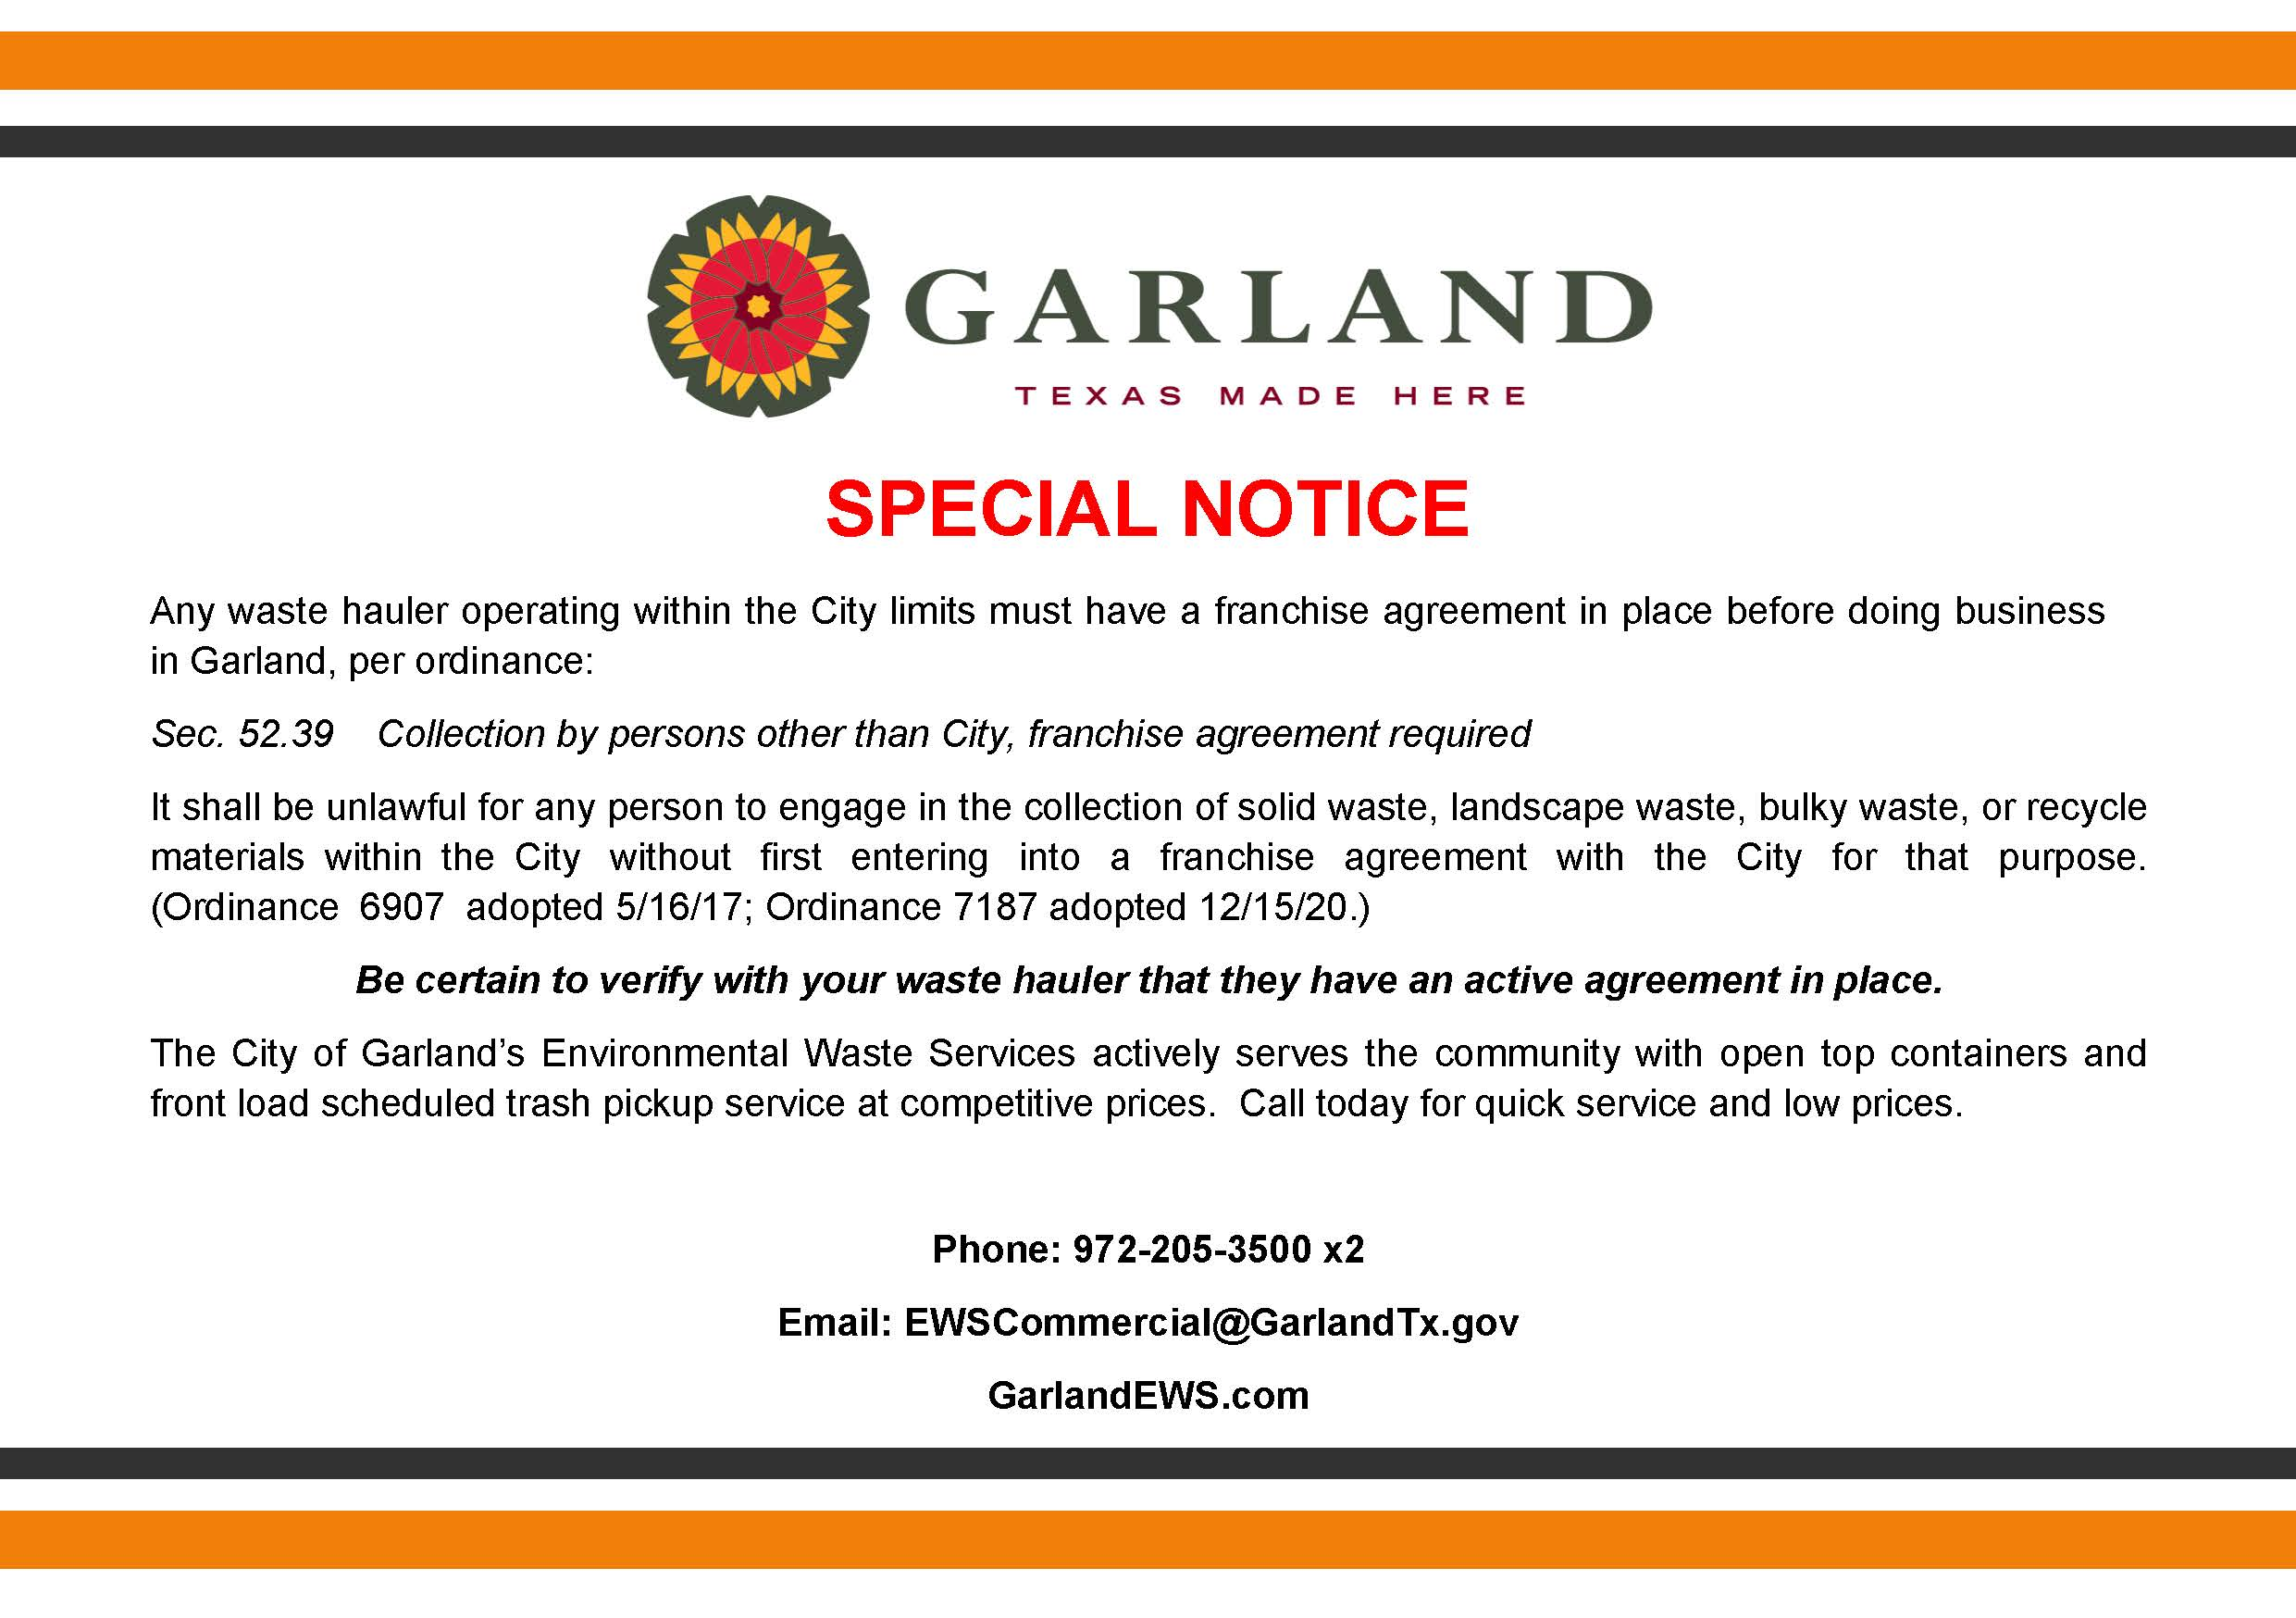 Special Notice Regarding Franchise Hauler Ordinance